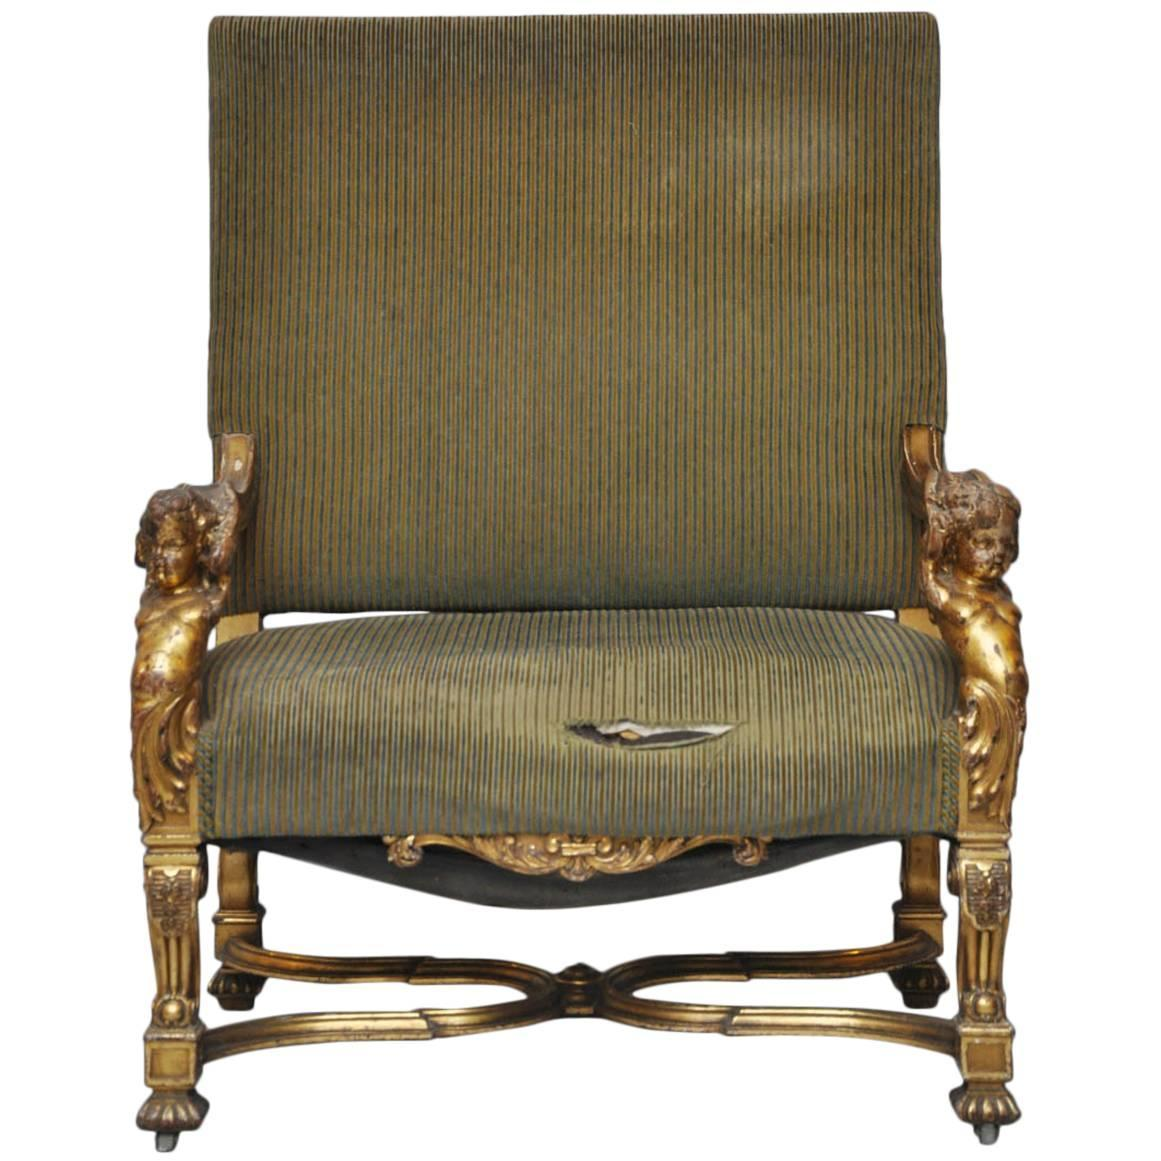 Louis The 14th Furniture Italian Louis Xiv Style Putti Gilt Chair For Sale At 1stdibs